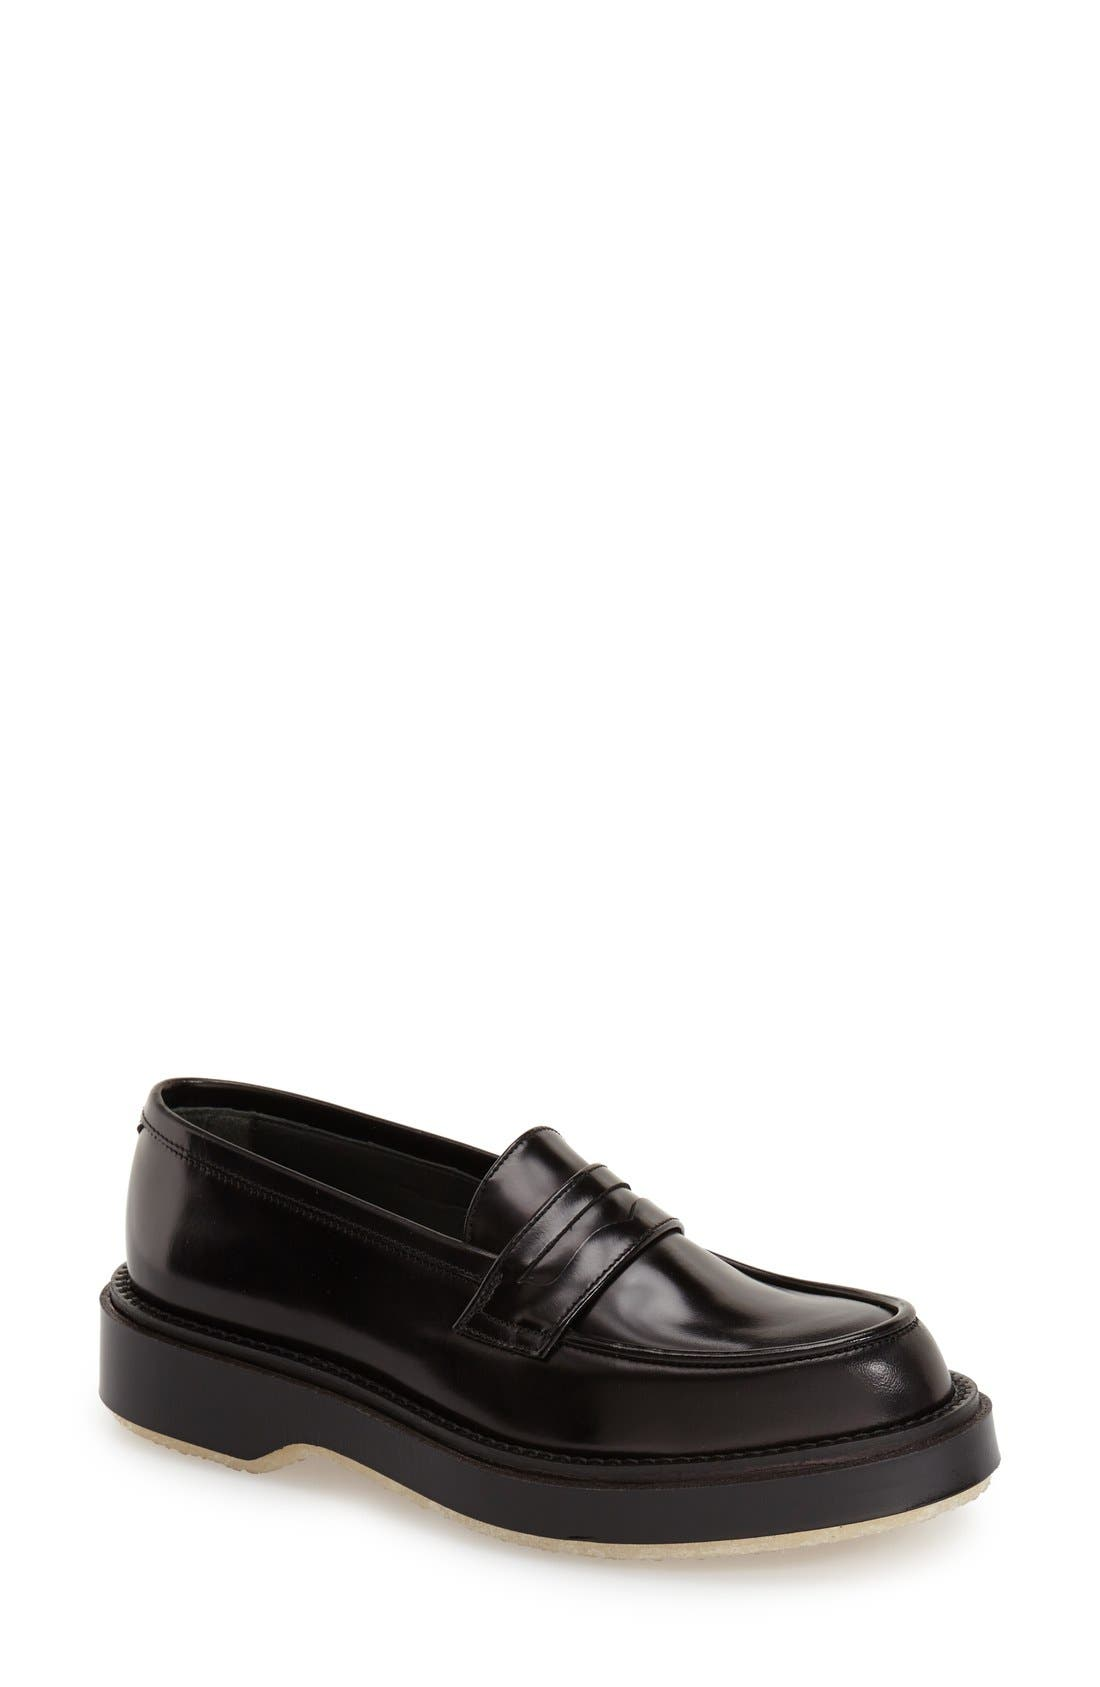 Alternate Image 1 Selected - Adieu Calfskin Leather Penny Loafer (Women)